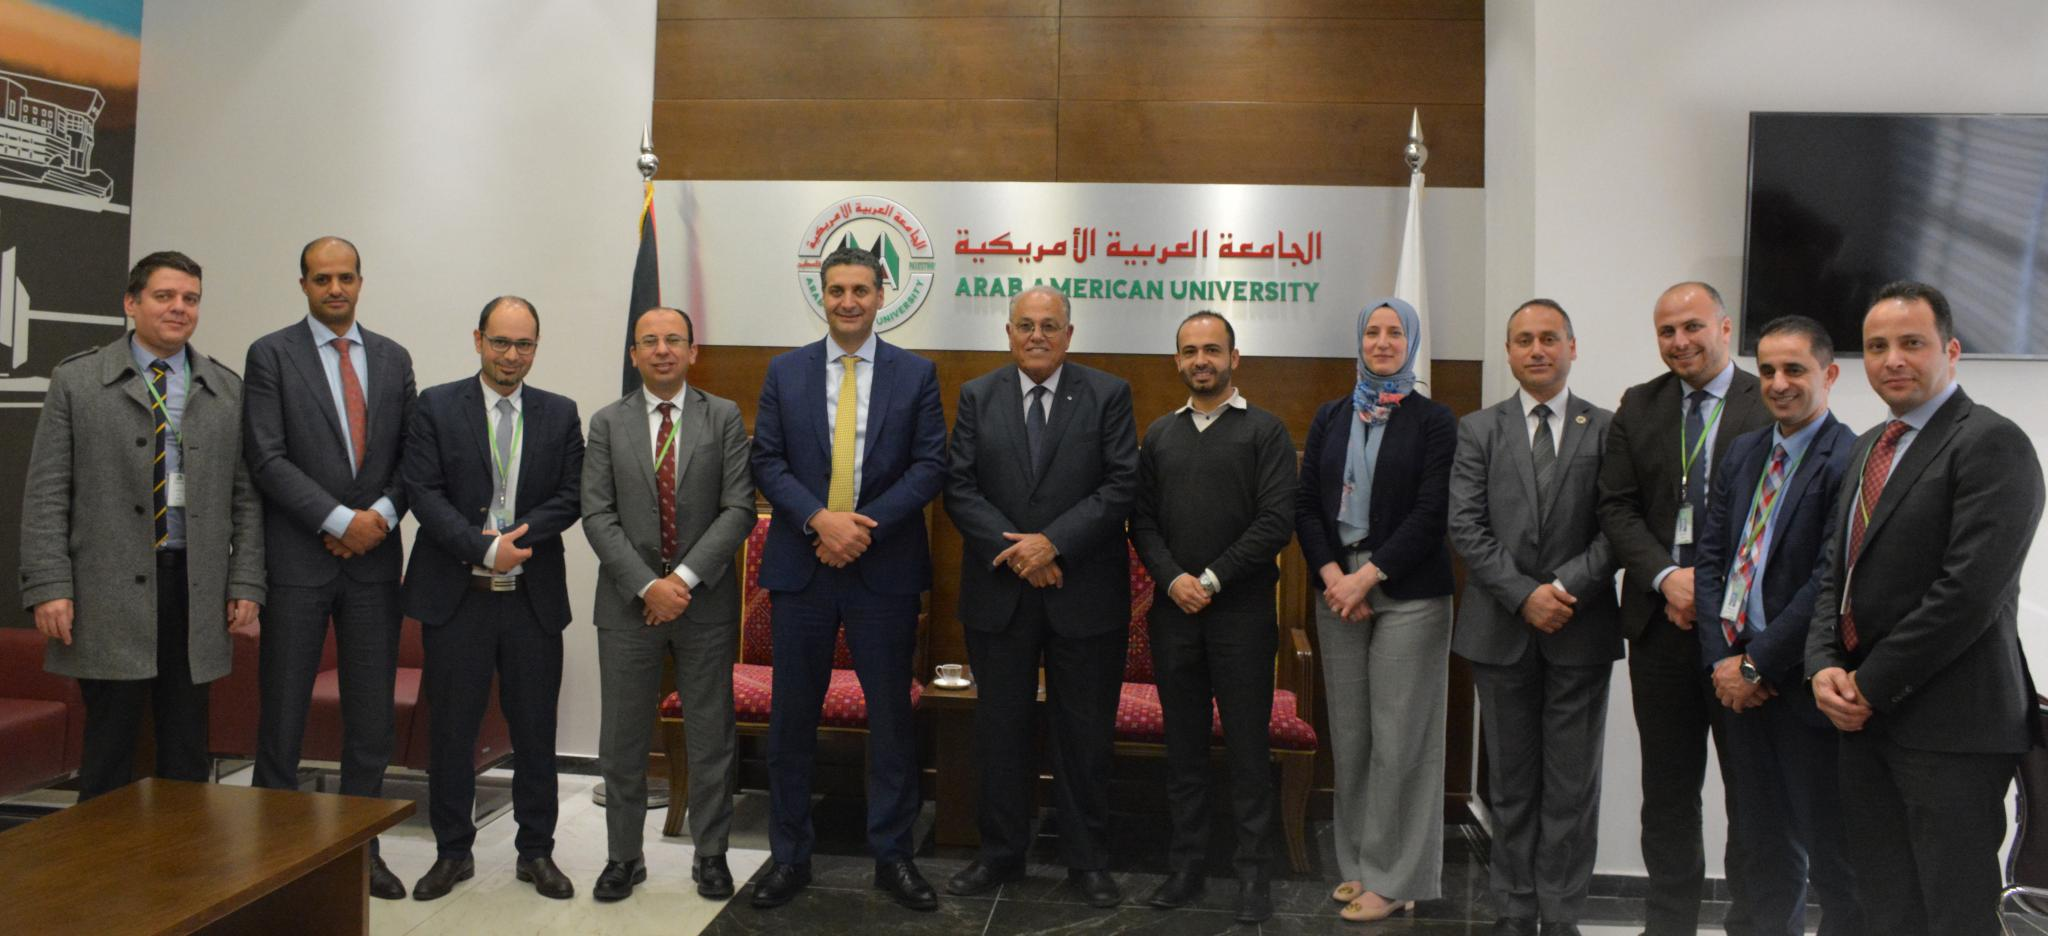 "Mr. Abdul Majeed Melhem- the General Manager of PALTEL ""Jawwal"" and Prof. Ali Zeidan Abu Zuhri- the University President, with the presence of Eng. Bara Asfour- the Assistant to the President, Dr. Jumana Jaradat- the Executive Manager of the Medical Center, Prof. Hisham Darwish, Mr. Khalid Herzallah along with staff and managers from PALTEL."